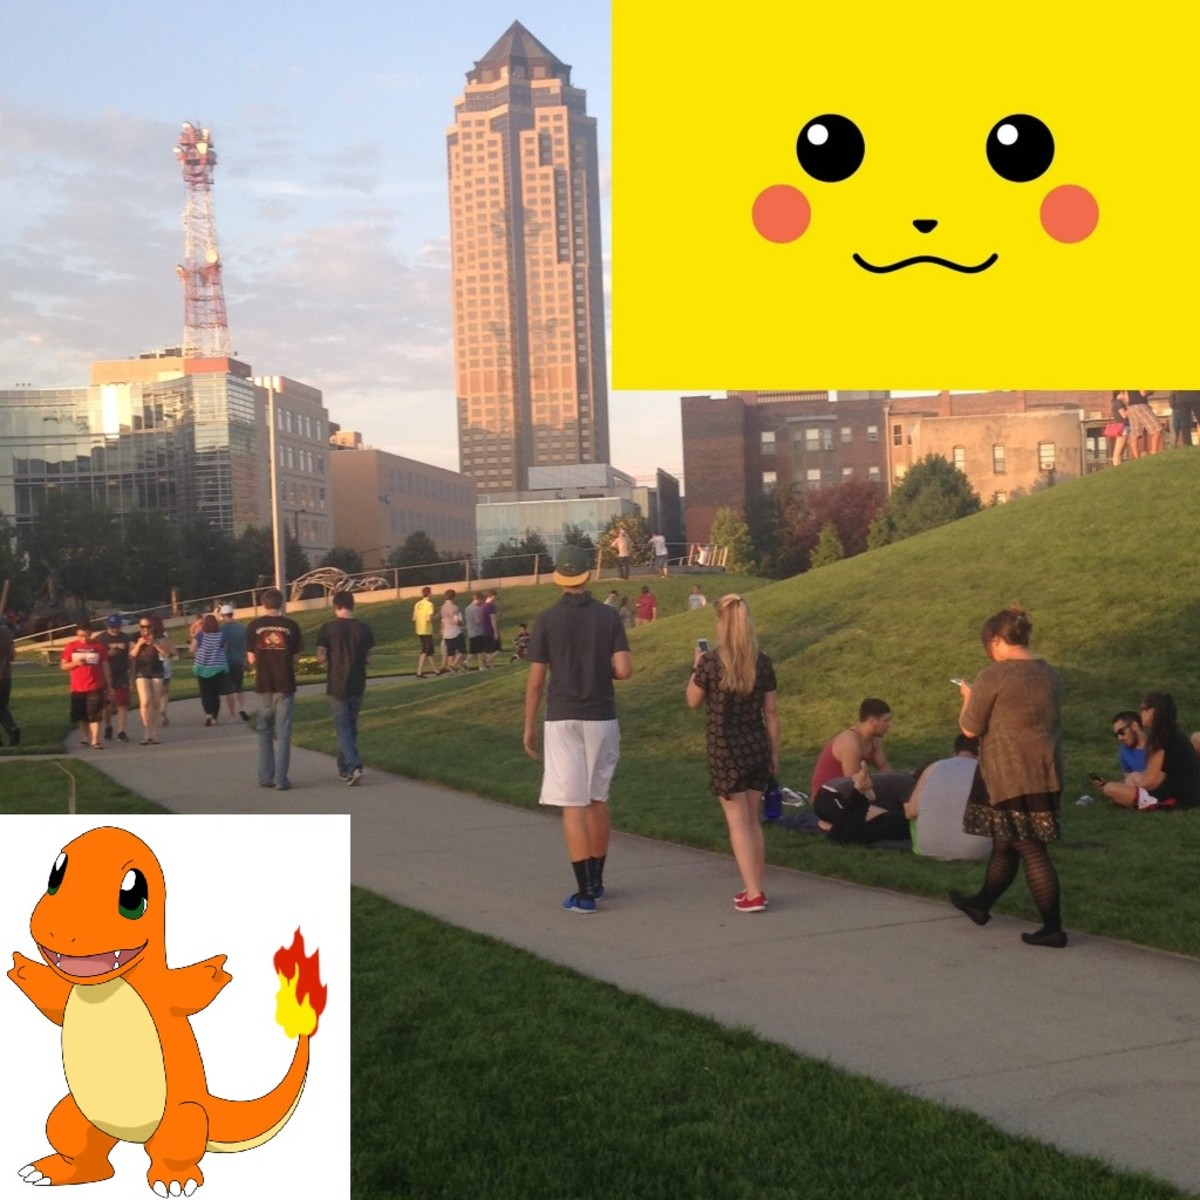 Pokemon Go: What Is It? Are There Risks?